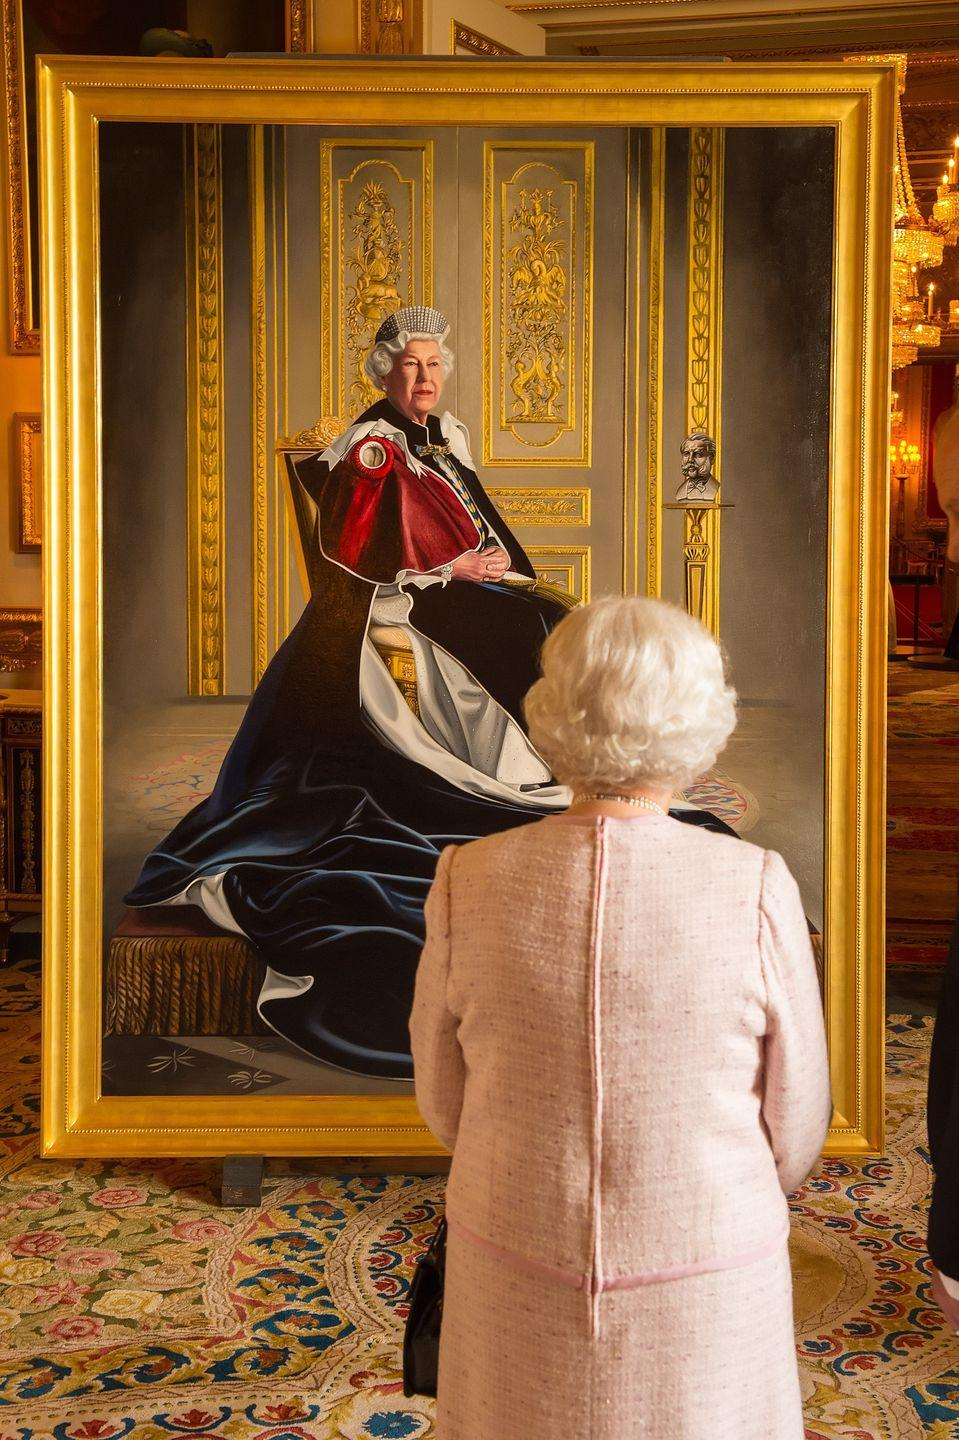 """<p>A Royal Collection Trust <a href=""""https://www.rct.uk/collection/themes/exhibitions/the-queen-portraits-of-a-monarch/windsor-castle-drawings-gallery"""" rel=""""nofollow noopener"""" target=""""_blank"""" data-ylk=""""slk:exhibition"""" class=""""link rapid-noclick-resp"""">exhibition</a> explored the monarch's visual legacy, placing official portraits by the likes of Cecil Beaton and Lucian Freud alongside Andy Warhol screenprints.</p>"""